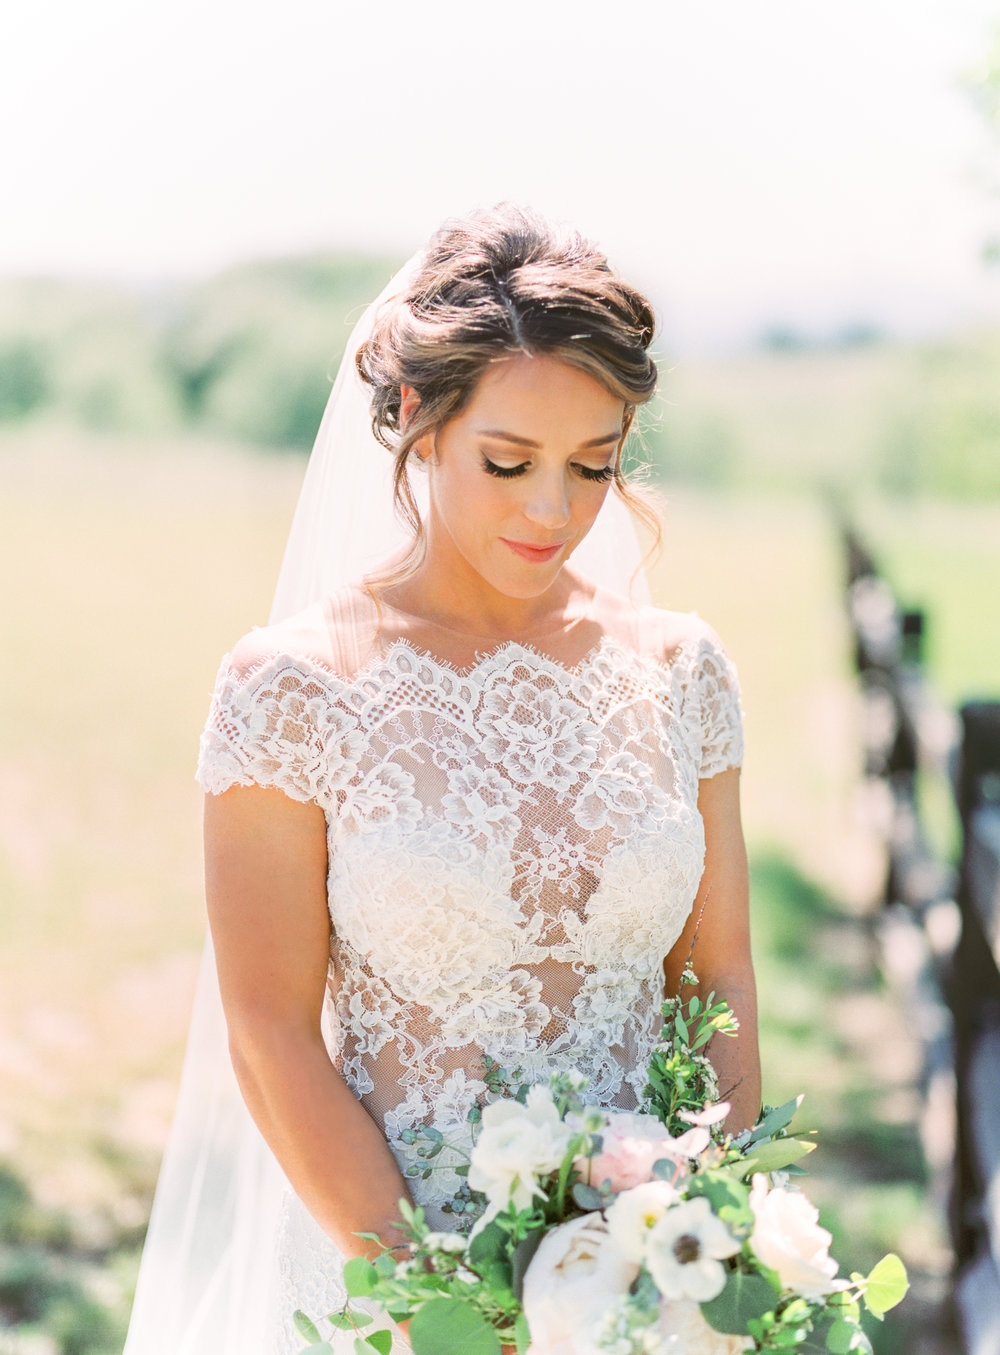 Kathryn-Allen-Boulder-wedding-2018-by-Lisa-ODwyer-131.jpg